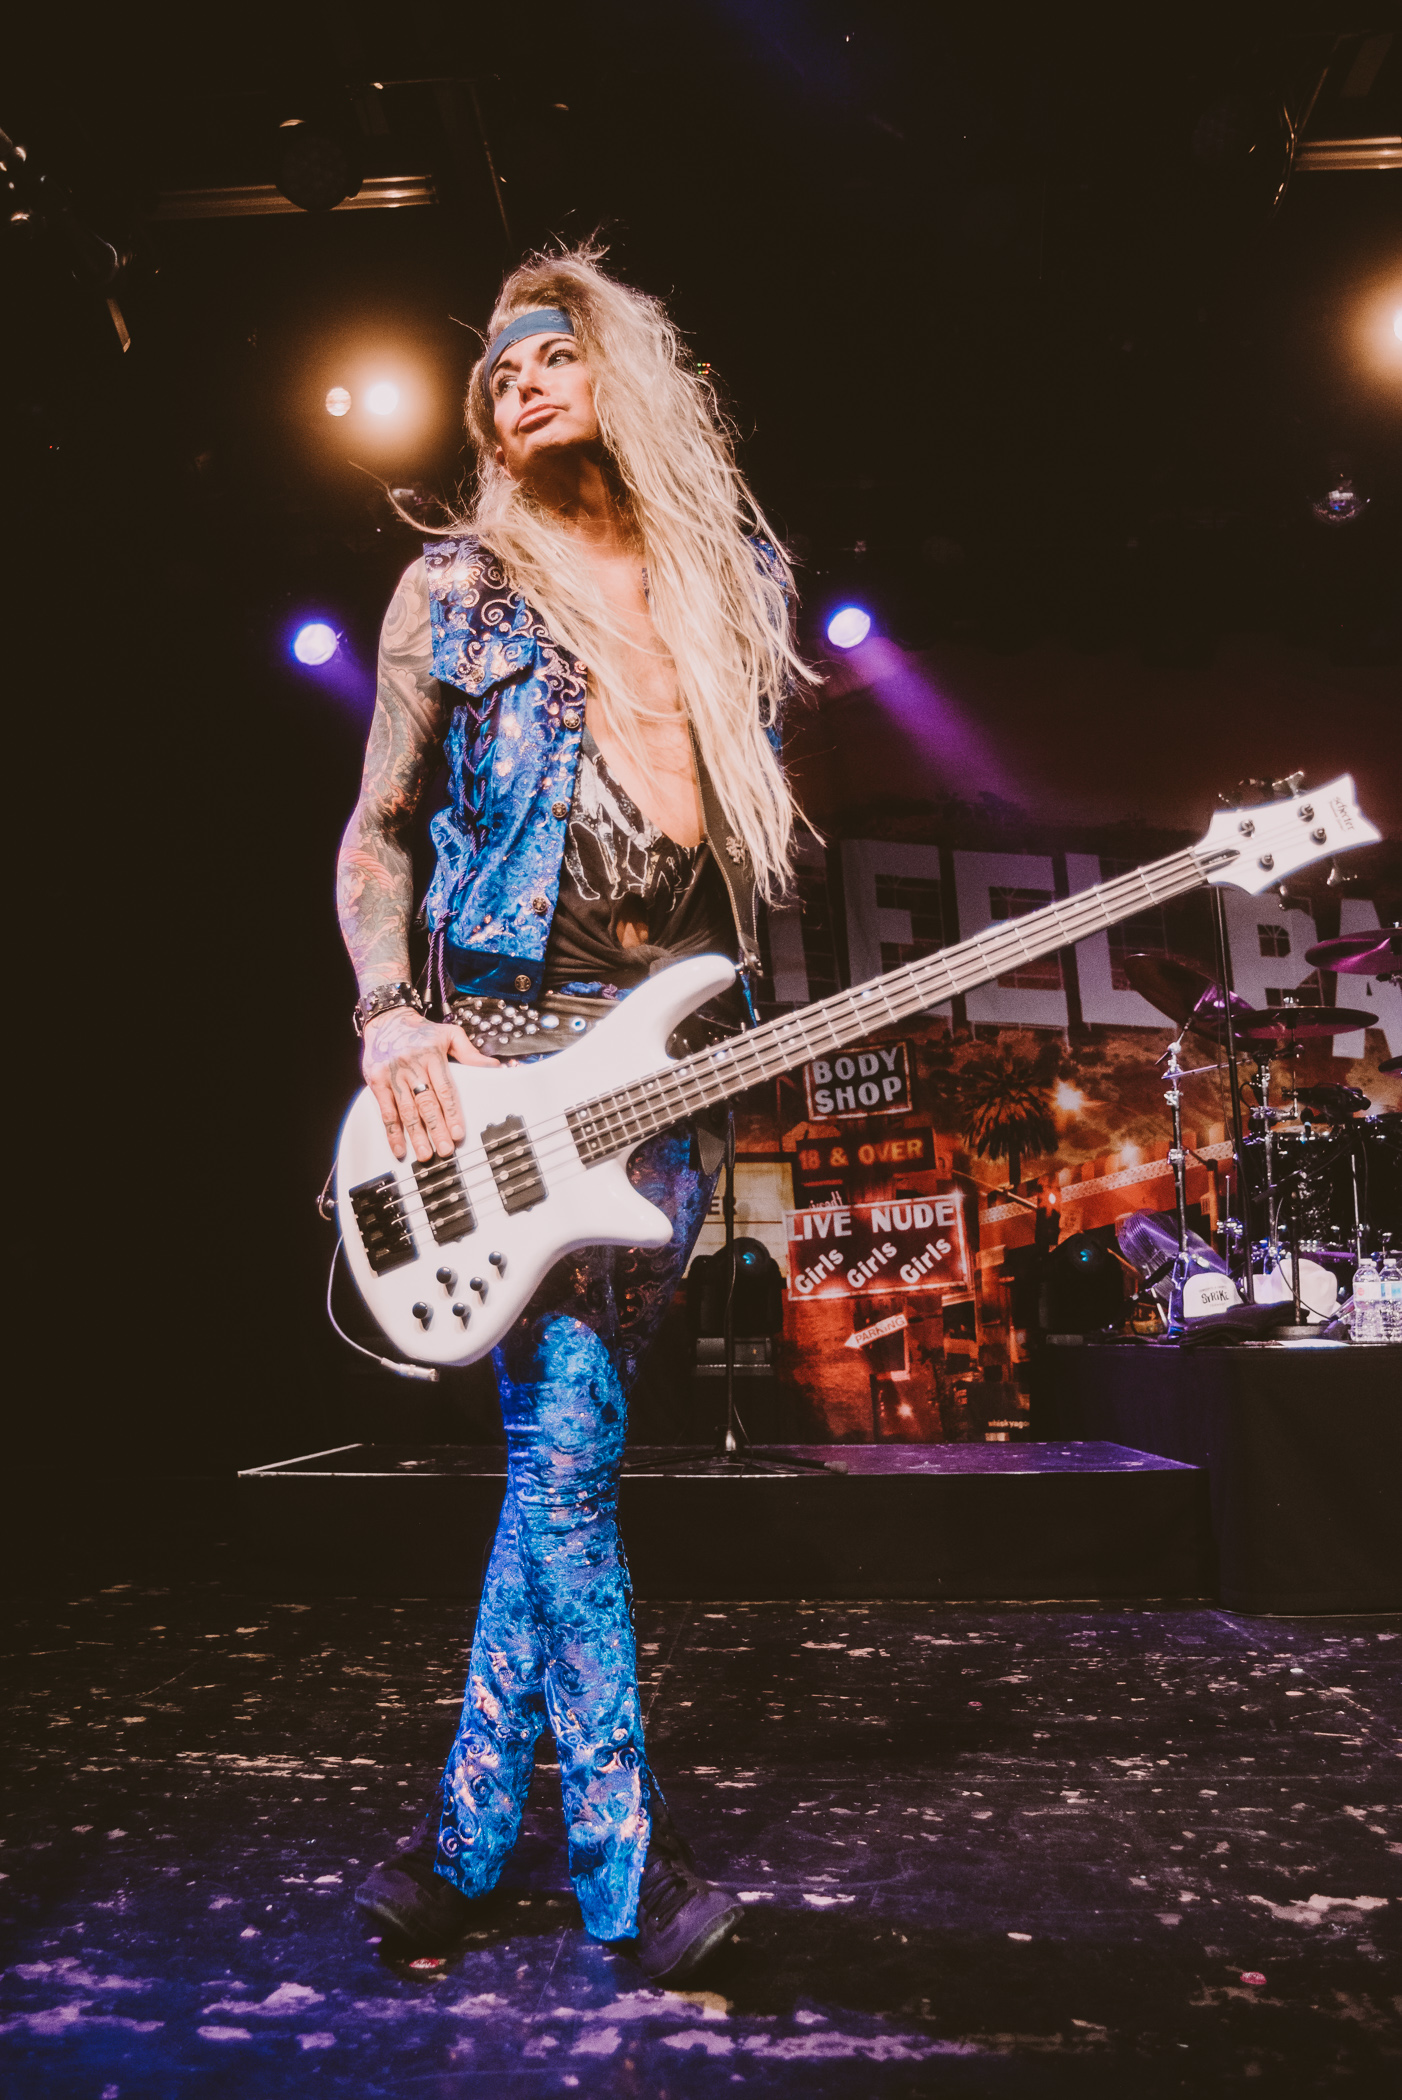 1_Steel_Panther-Commodore-Ballroom-Timothy_Nguyen-20190411 (12 of 21).JPG